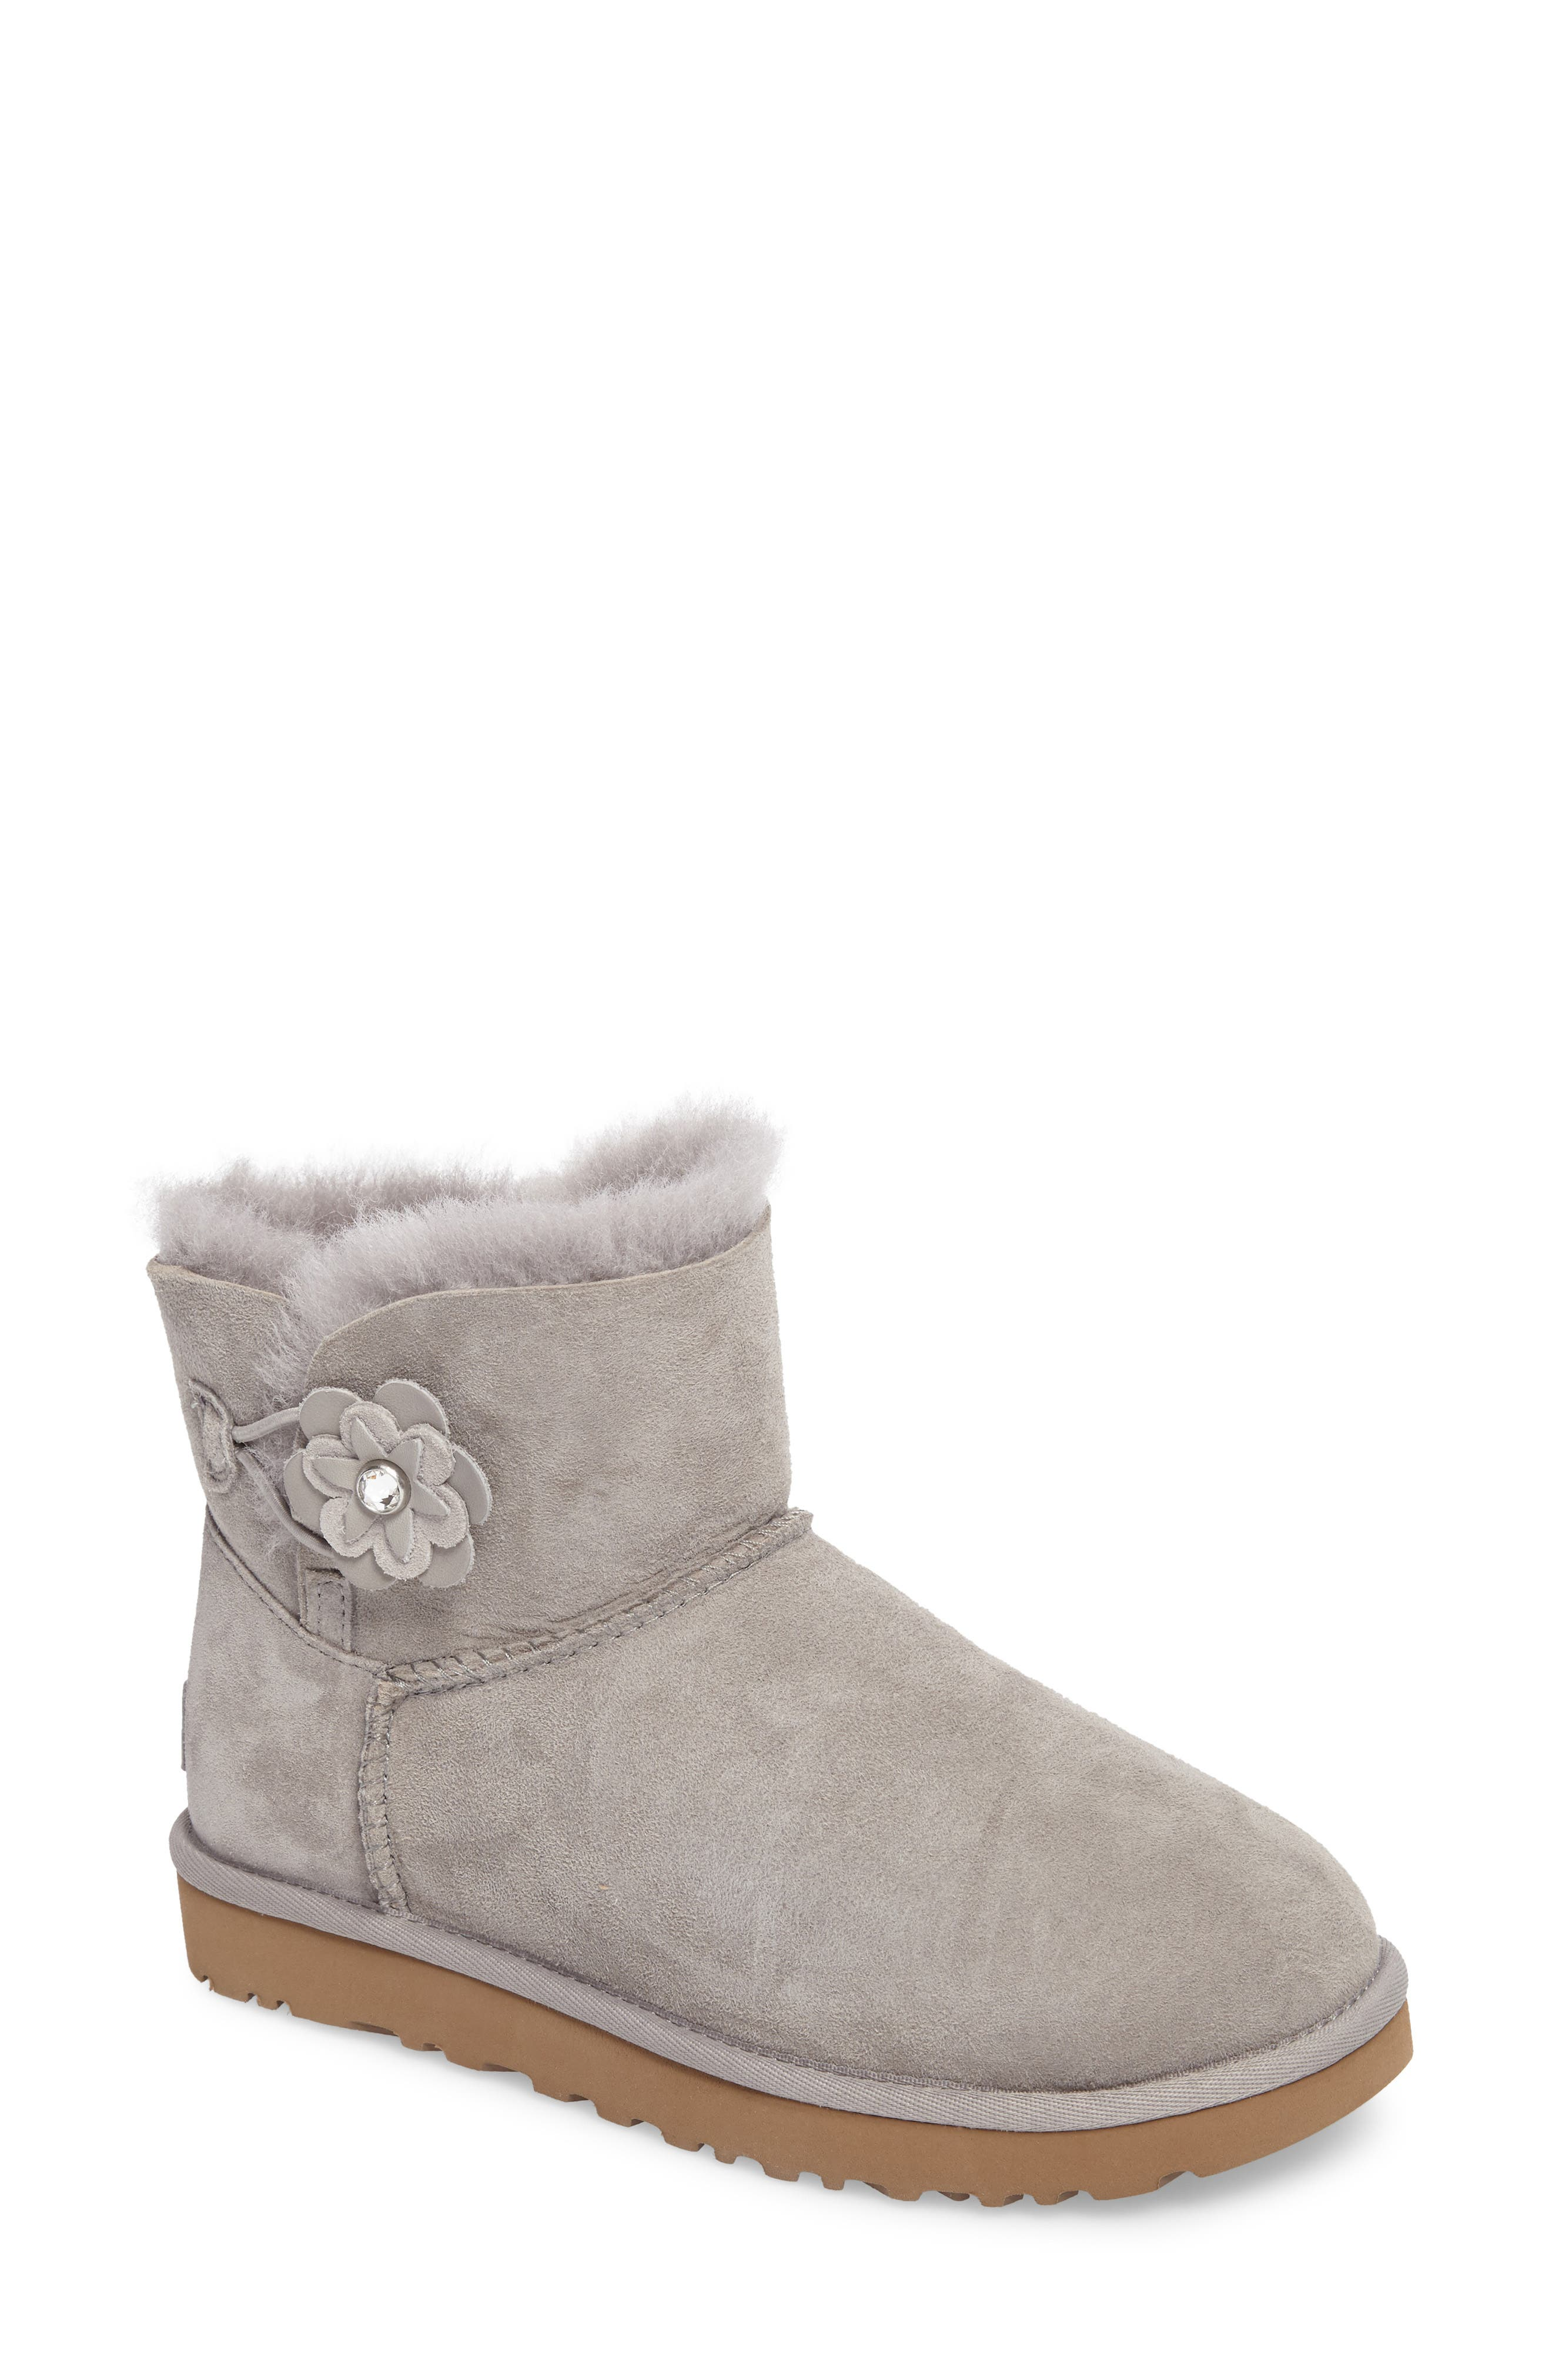 Bailey Petal Genuine Shearling Lined Mini Boot,                             Main thumbnail 2, color,